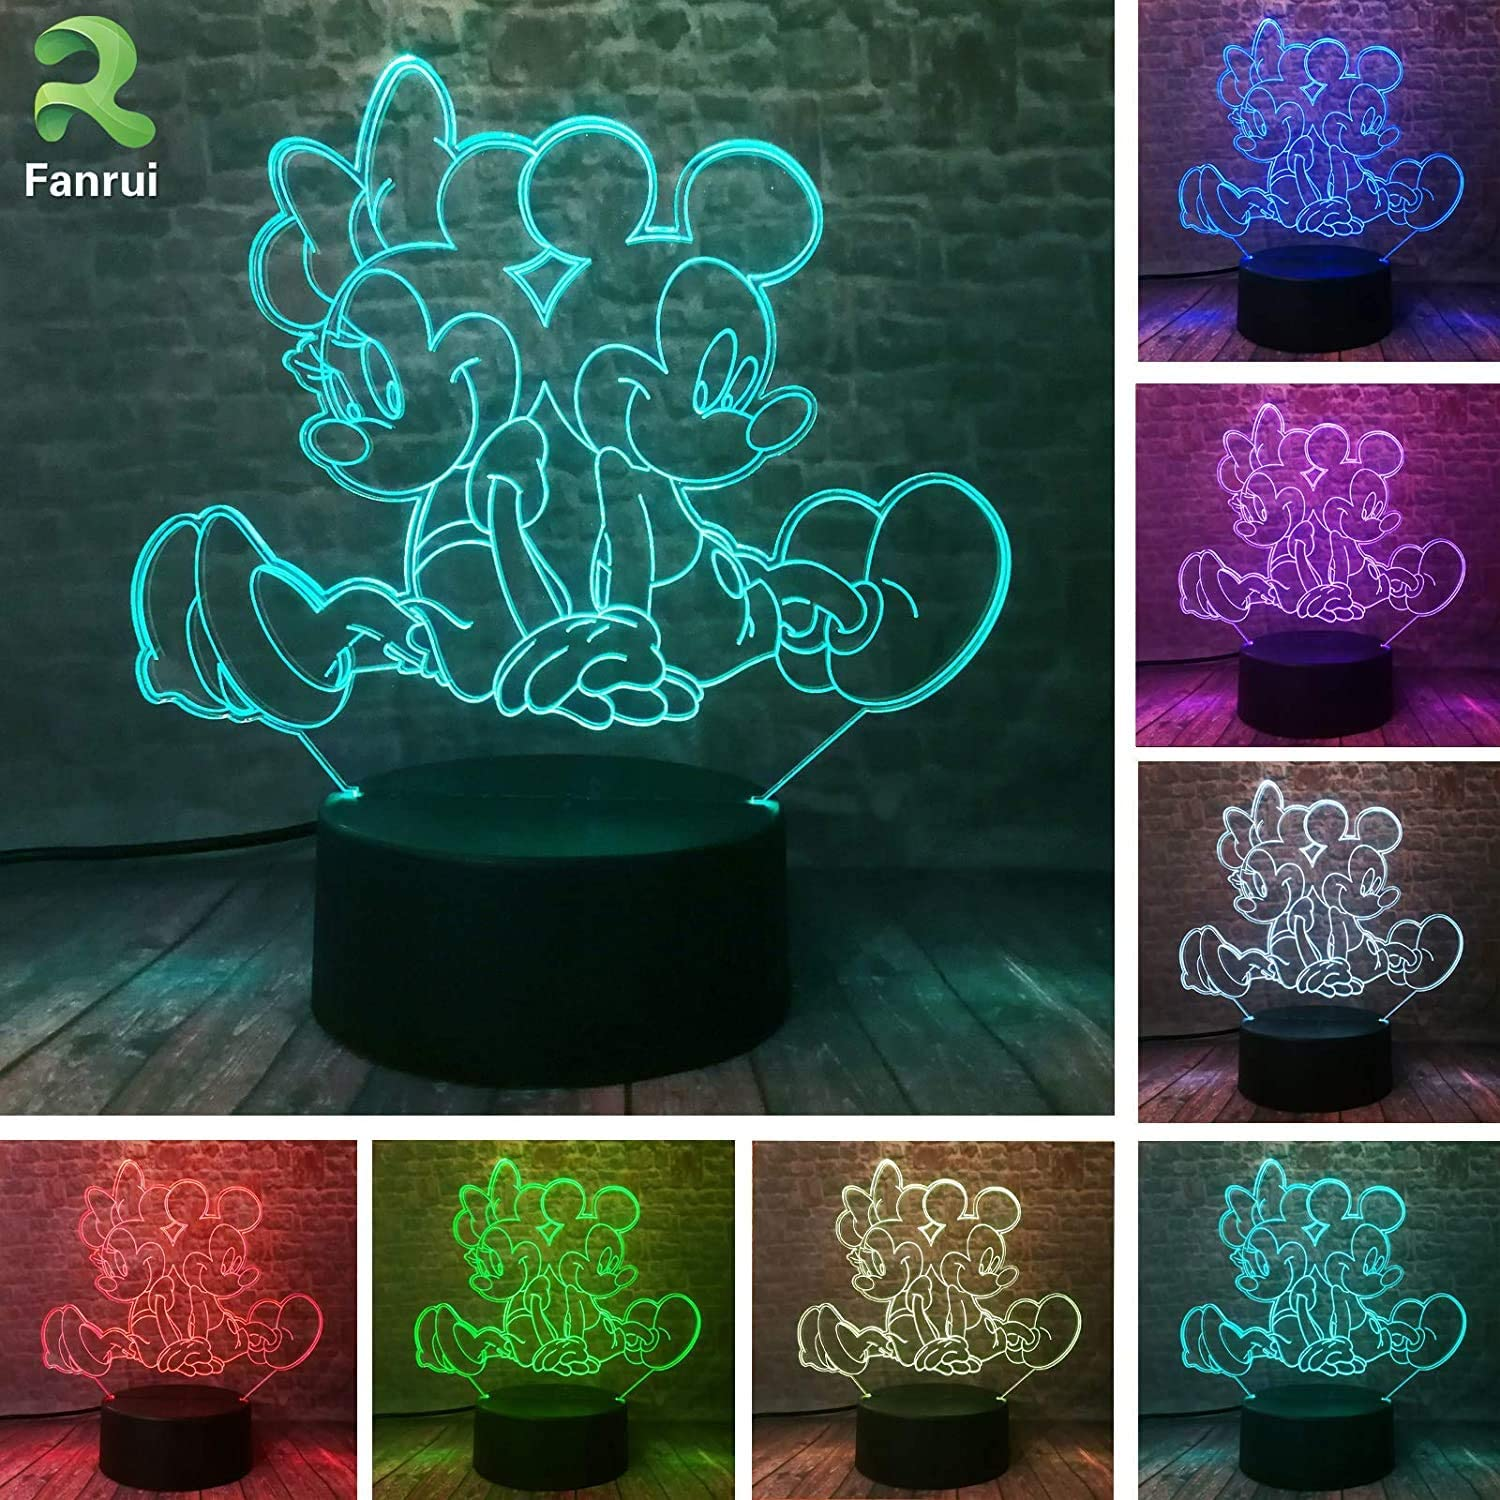 Fanrui Mickey Minnie Figurines Fairy Light 3D Cartoon Mouse Automatic LED Children Night Lamp Sweet Perfect 7 Colors Change Boys Girls Room Decor Kids Baby Festival Xmas Birthday Holiday Toys Presents